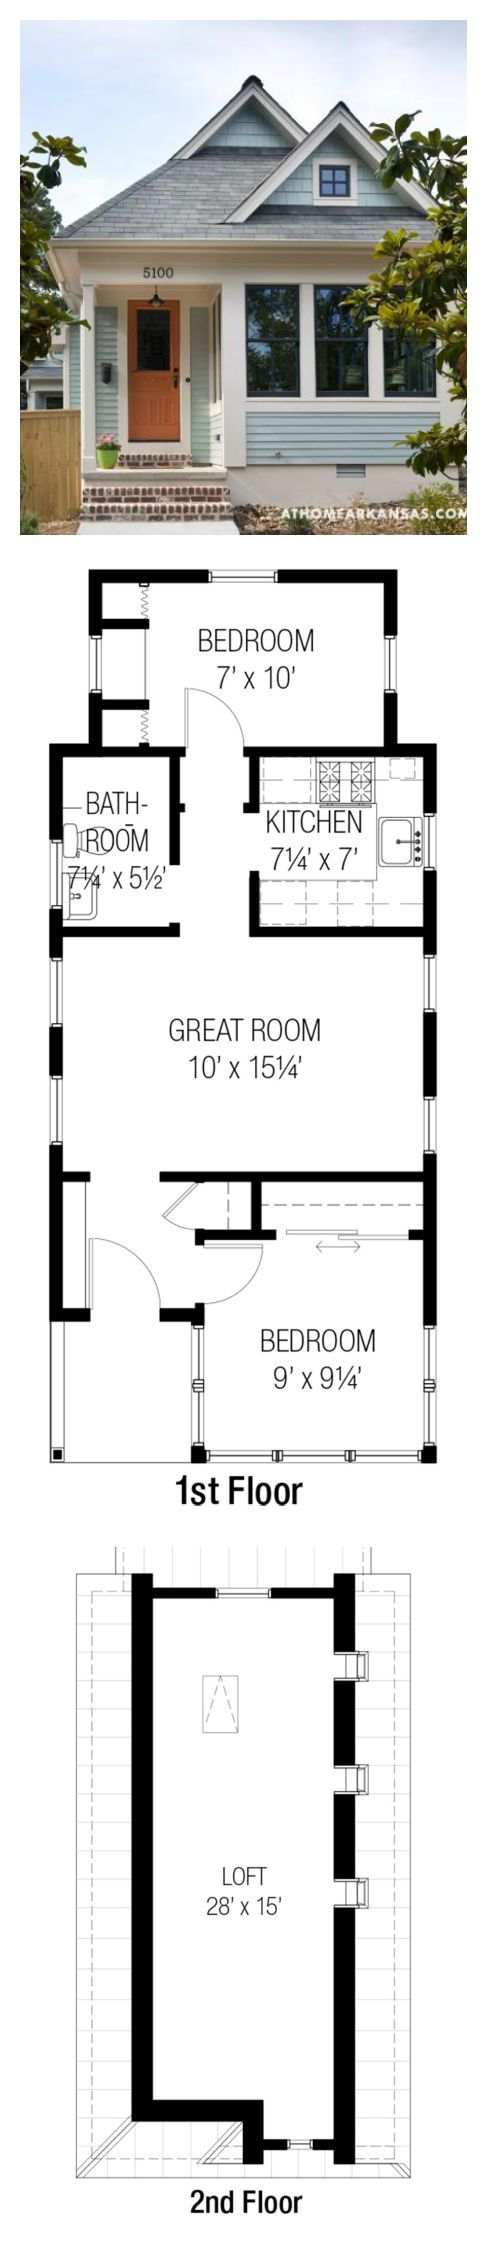 plan 915 16 whidbey from tumbleweed tiny house co 557 sf 2 bed rh pinterest com  2 bedroom 1 bath small house plans